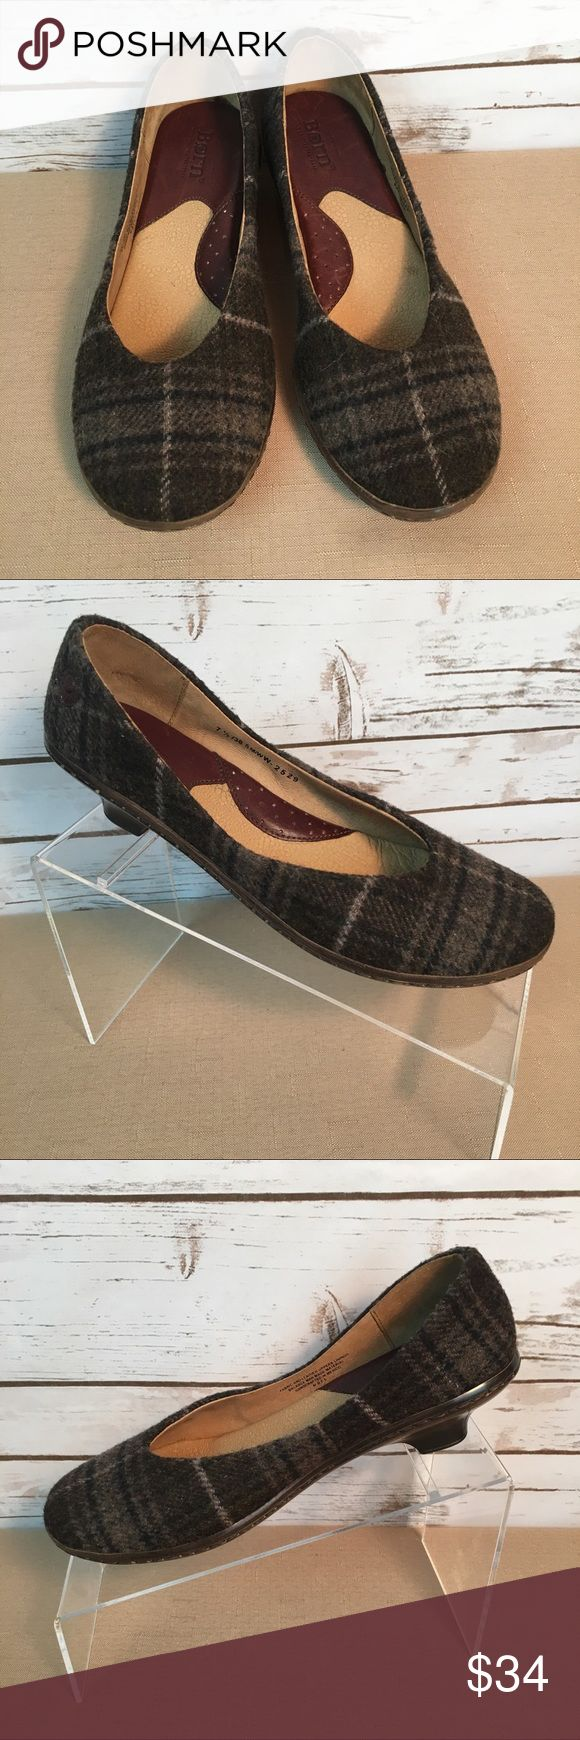 Born Plaid Wool Kitten Heels Born Brown Plaid Wool Kitten Heels.  Used-Gently worn.  Medium width. Born Shoes Heels